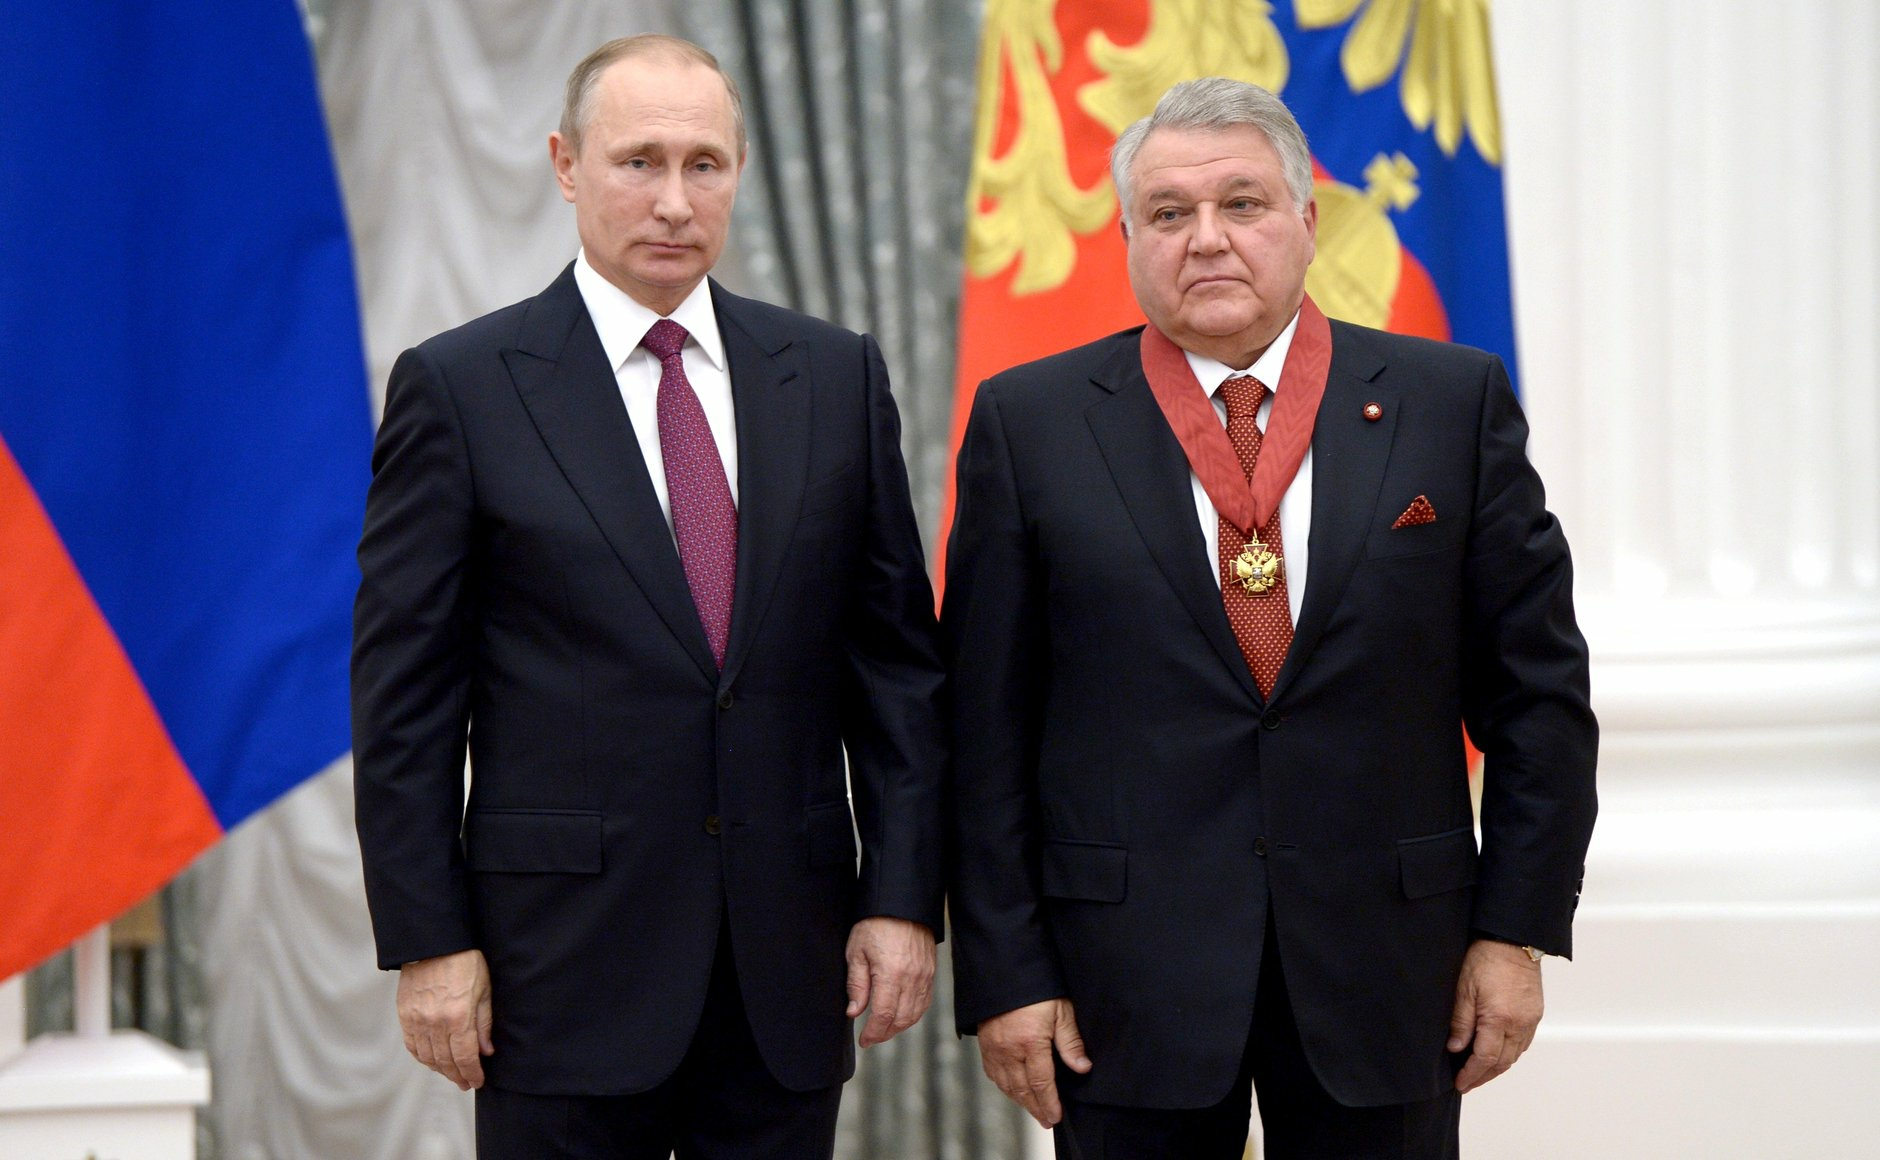 September 22, 2016. - Russia, Moscow. - Russian President Vladimir Putin (left) and President of the National Research Center Kurchatov Institute Mikhail Kovalchuk at the ceremony of giving state awards for outstanding achievements in the Catherine Hall in Kremlin.